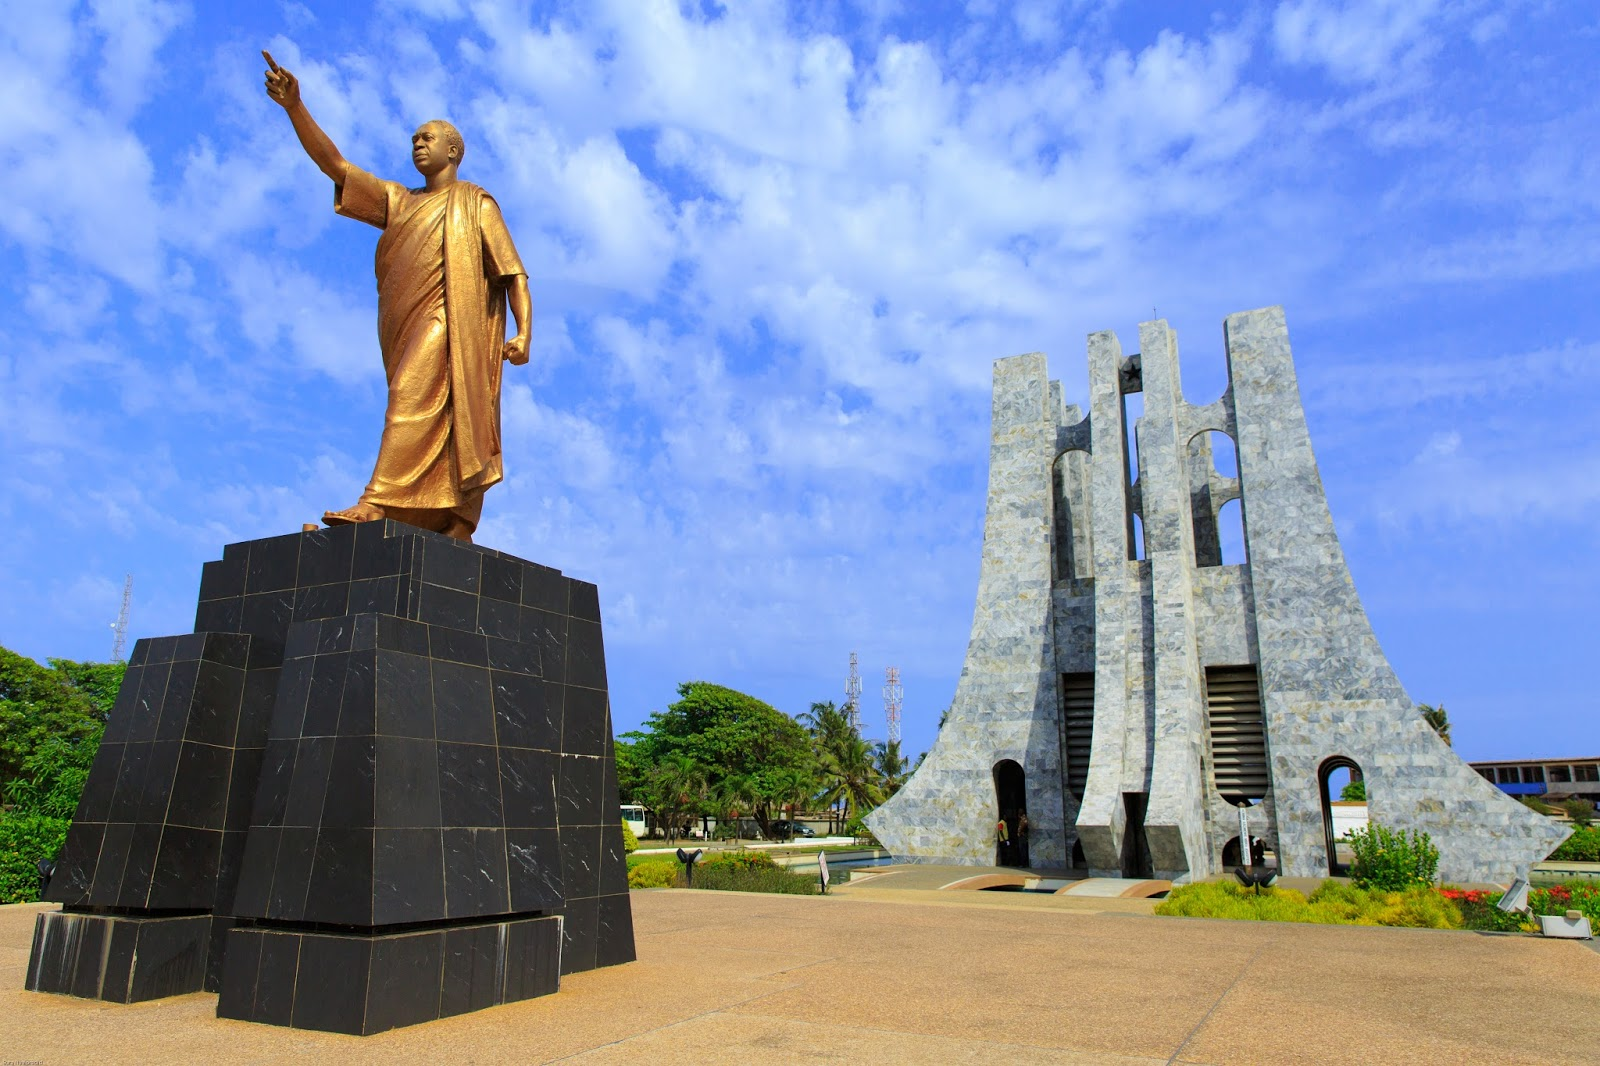 tourist sites in Ghana you should definitely visit